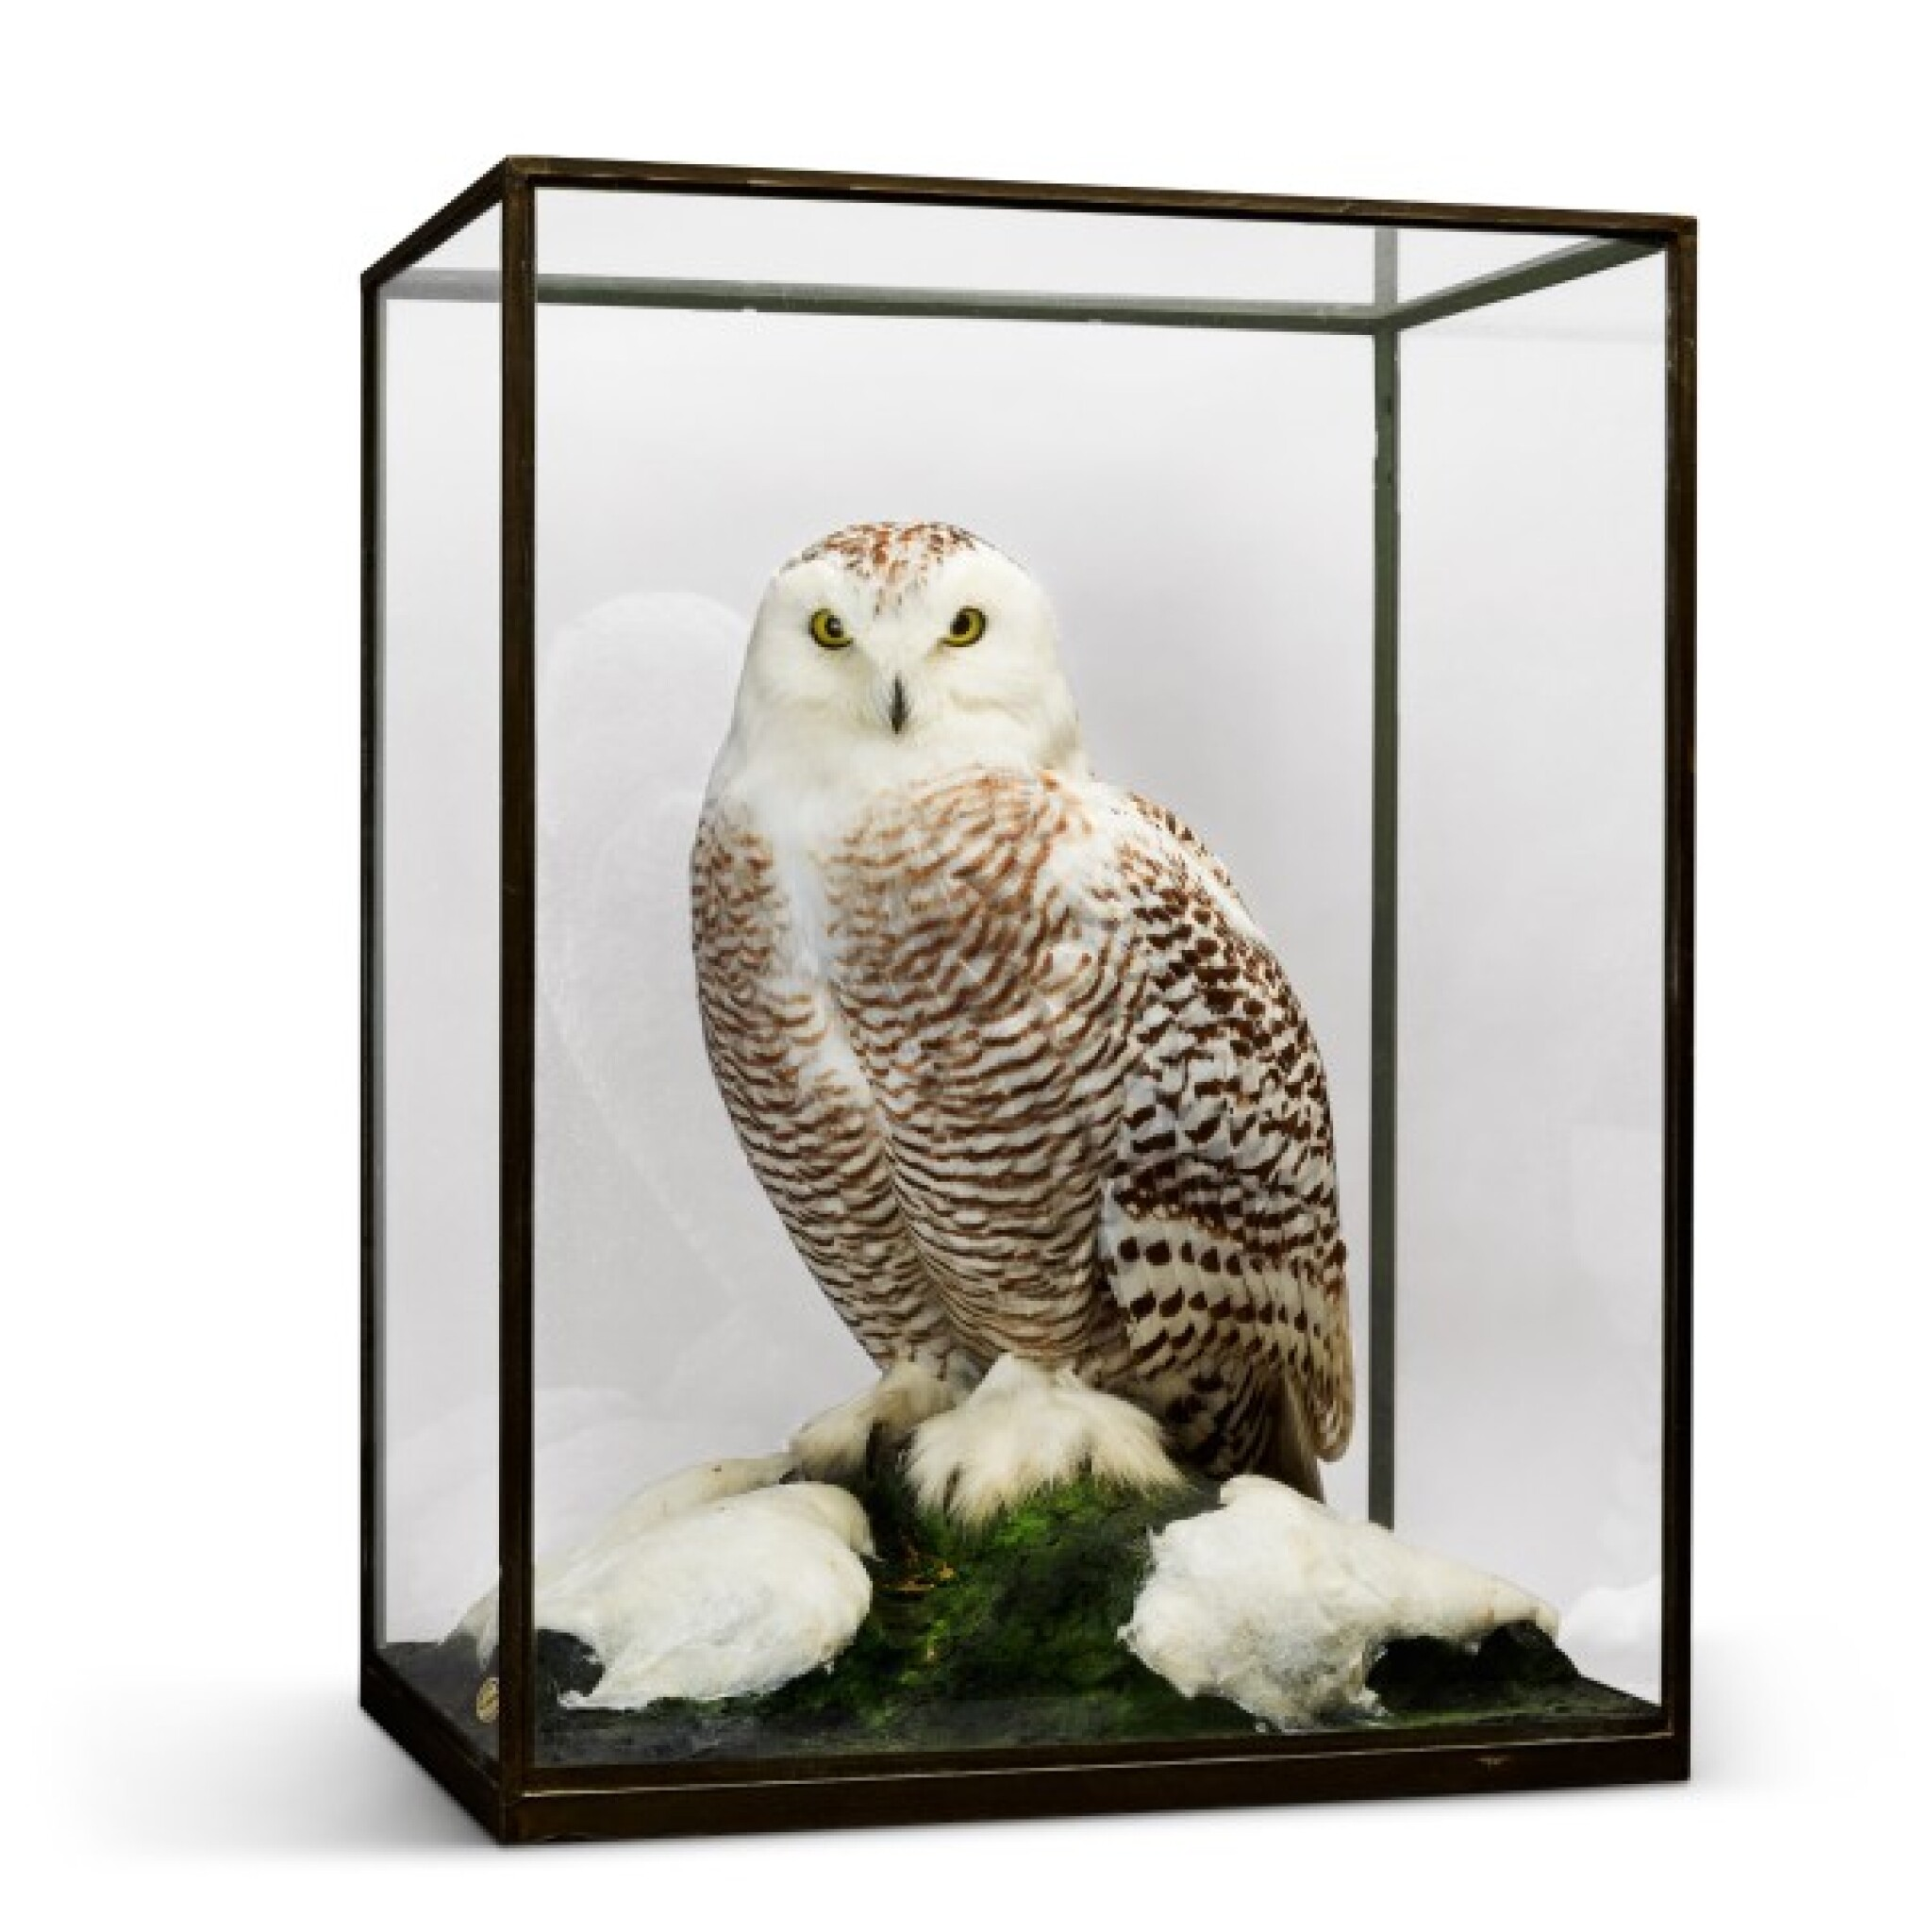 View full screen - View 1 of Lot 20. Rowland Ward, London, 1857-1975 | Snowy Owl.